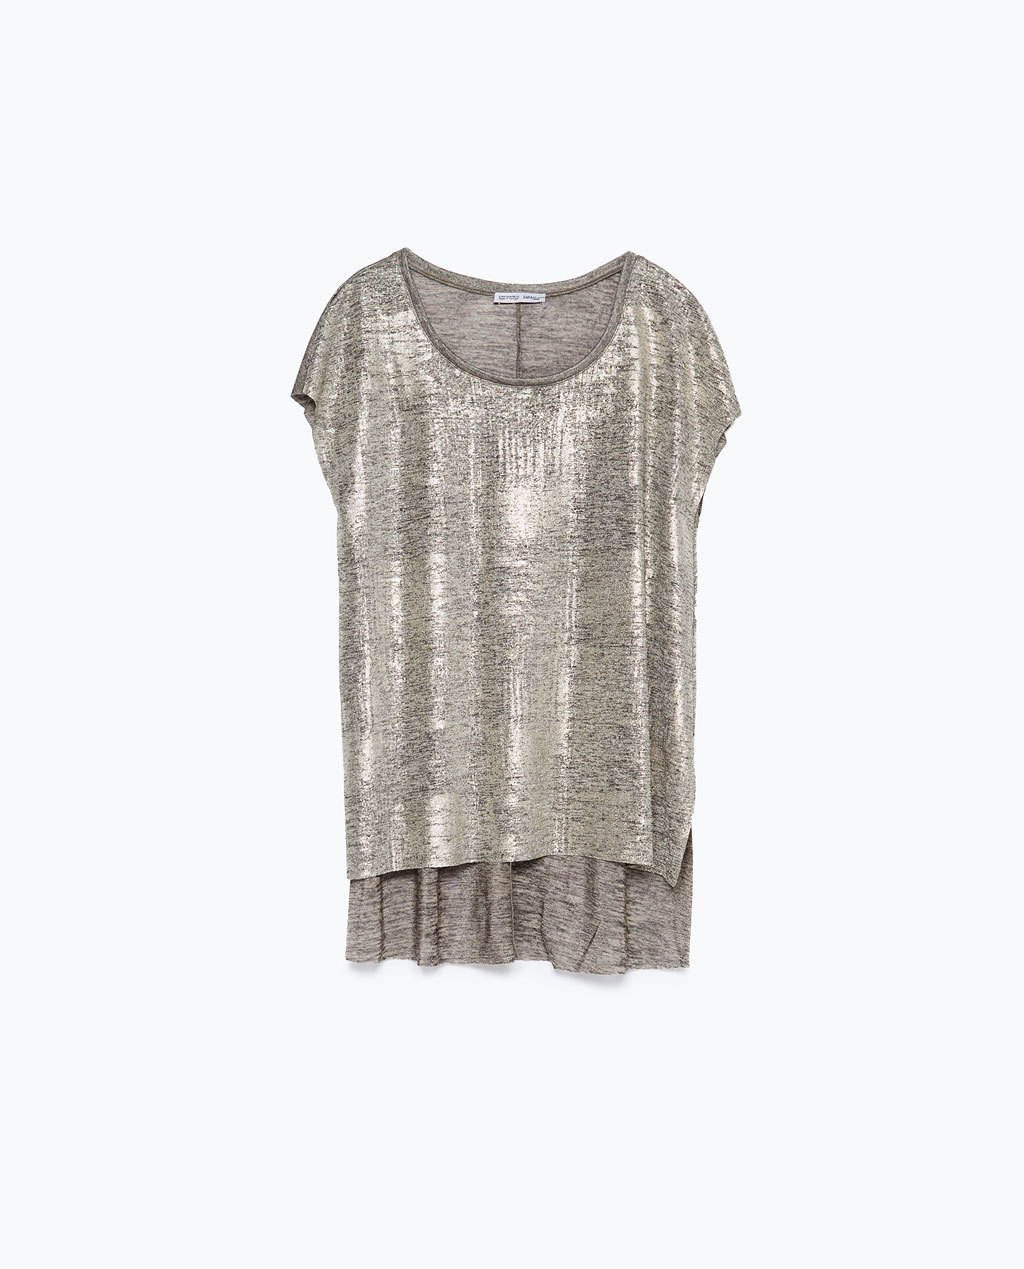 Metallic T Shirt - pattern: plain; length: below the bottom; style: t-shirt; predominant colour: silver; occasions: casual; neckline: scoop; fibres: polyester/polyamide - stretch; fit: loose; sleeve length: short sleeve; sleeve style: standard; pattern type: fabric; texture group: jersey - stretchy/drapey; season: a/w 2015; wardrobe: highlight